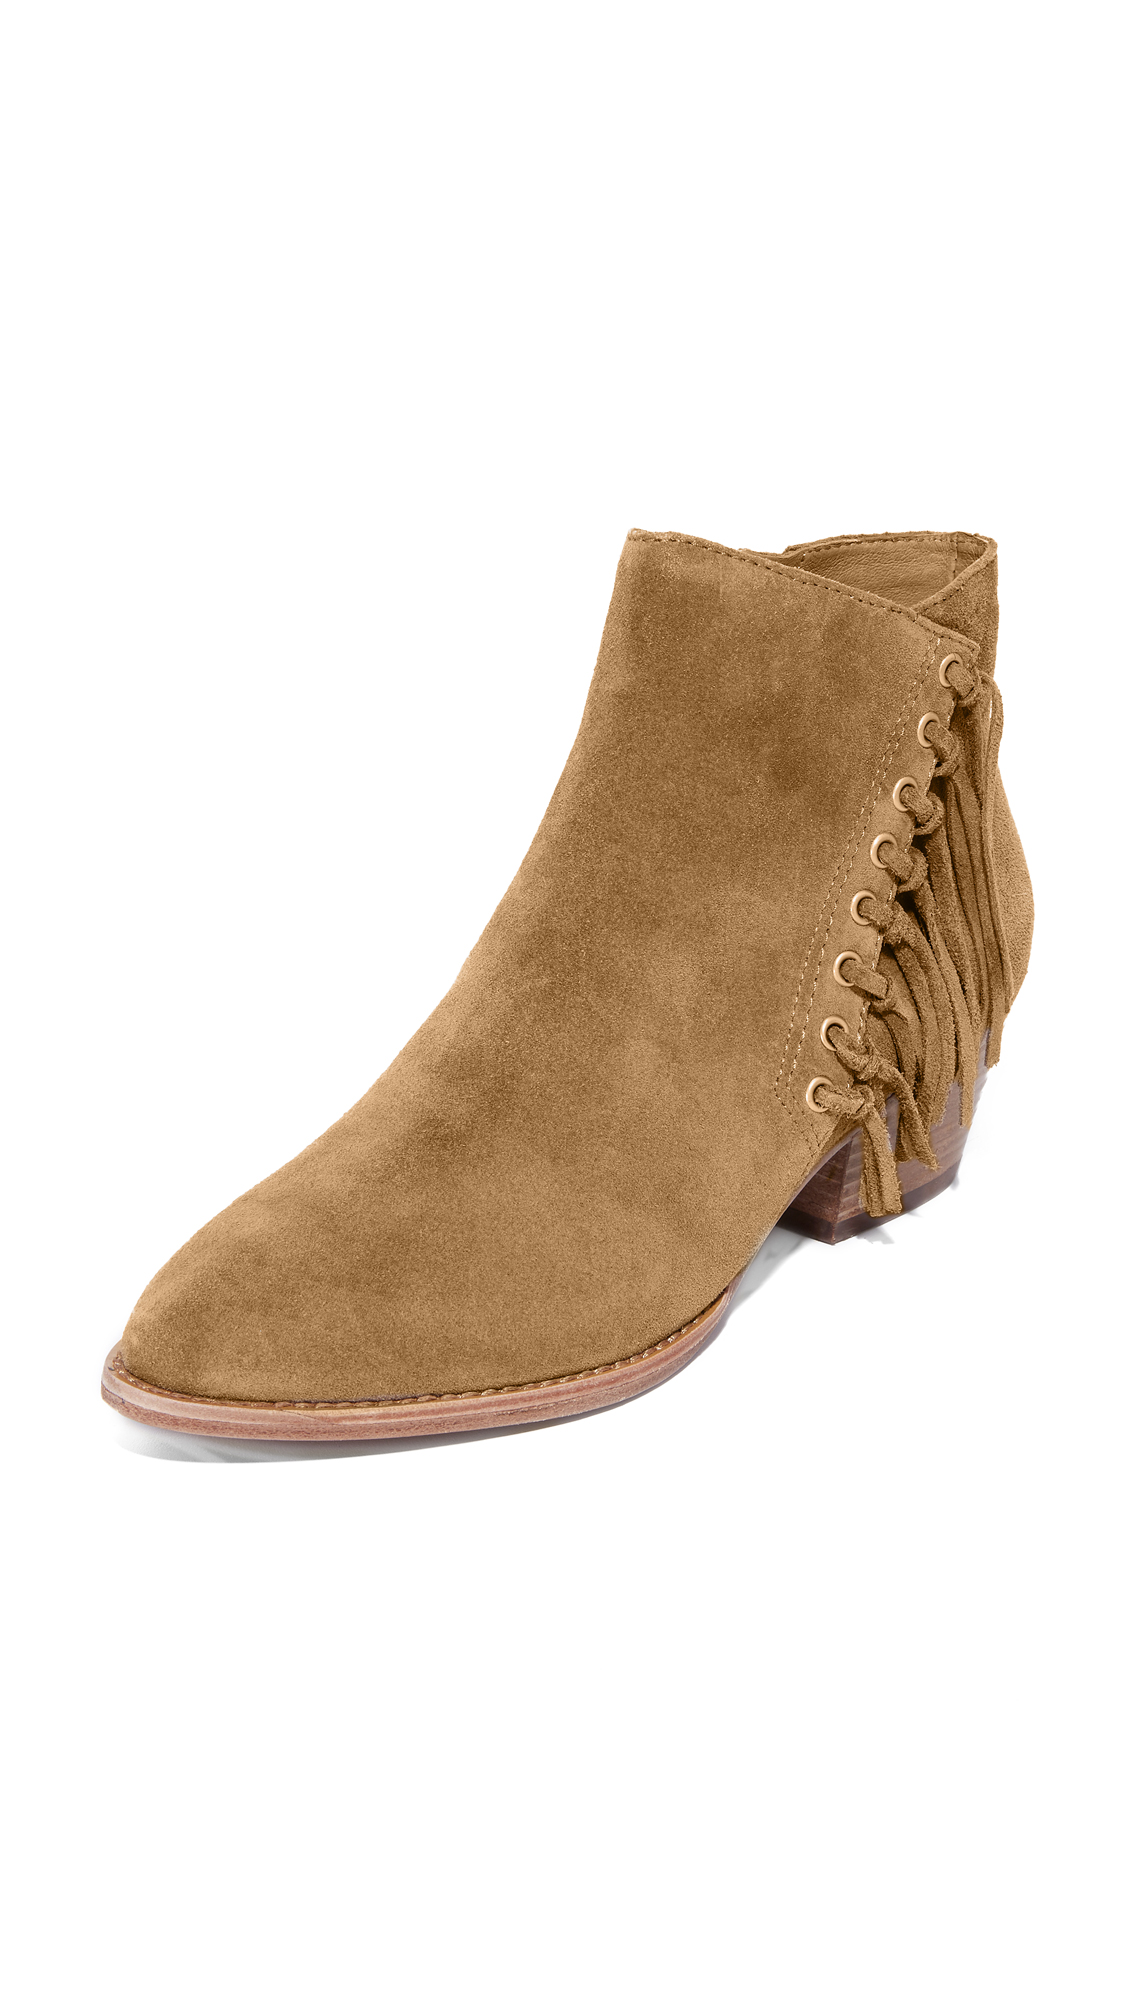 Ash Lenny Booties - Russet